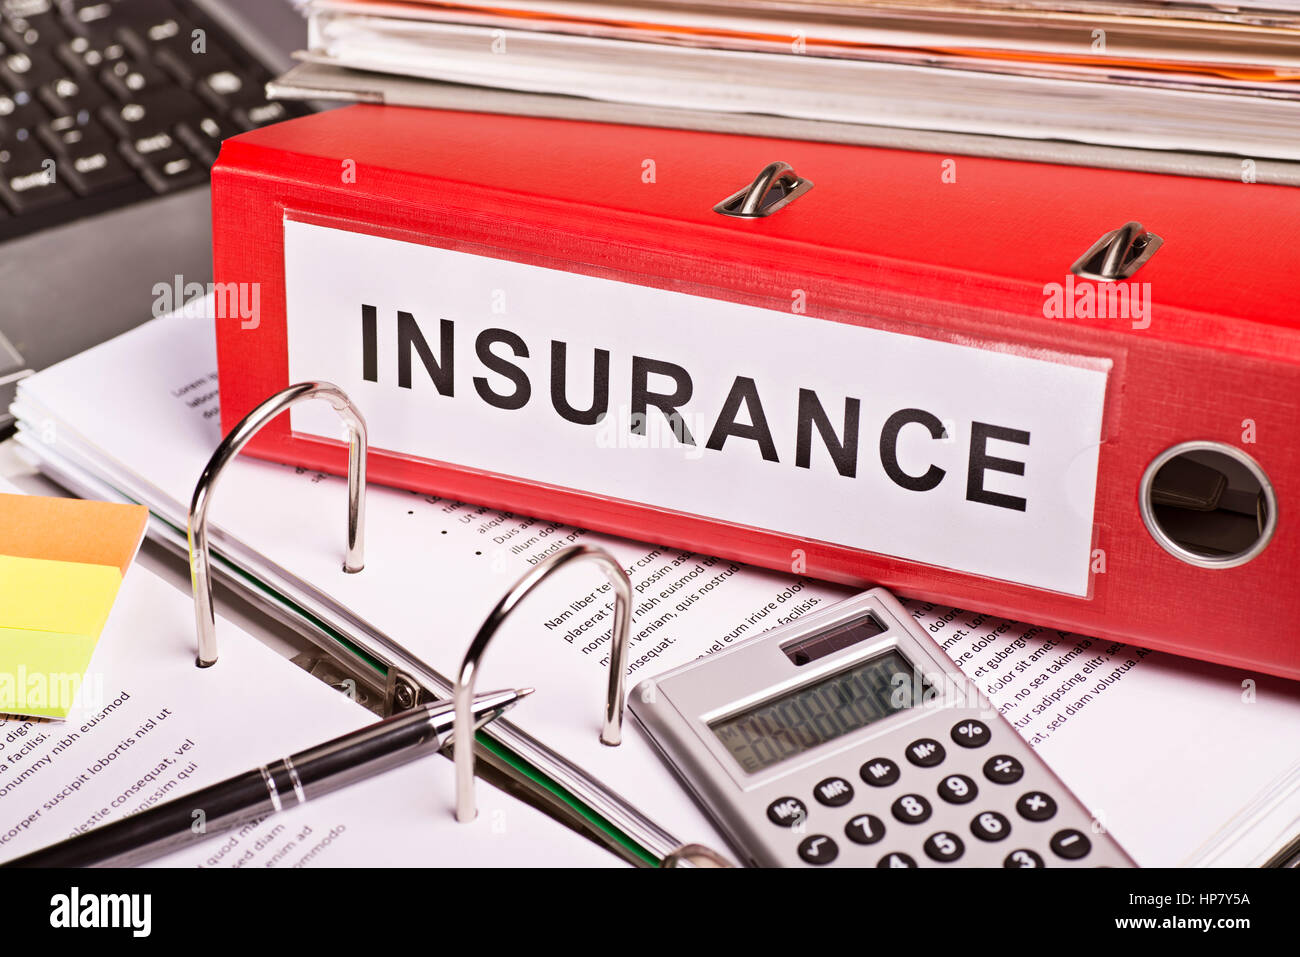 Red file folder with the label insurance. - Stock Image